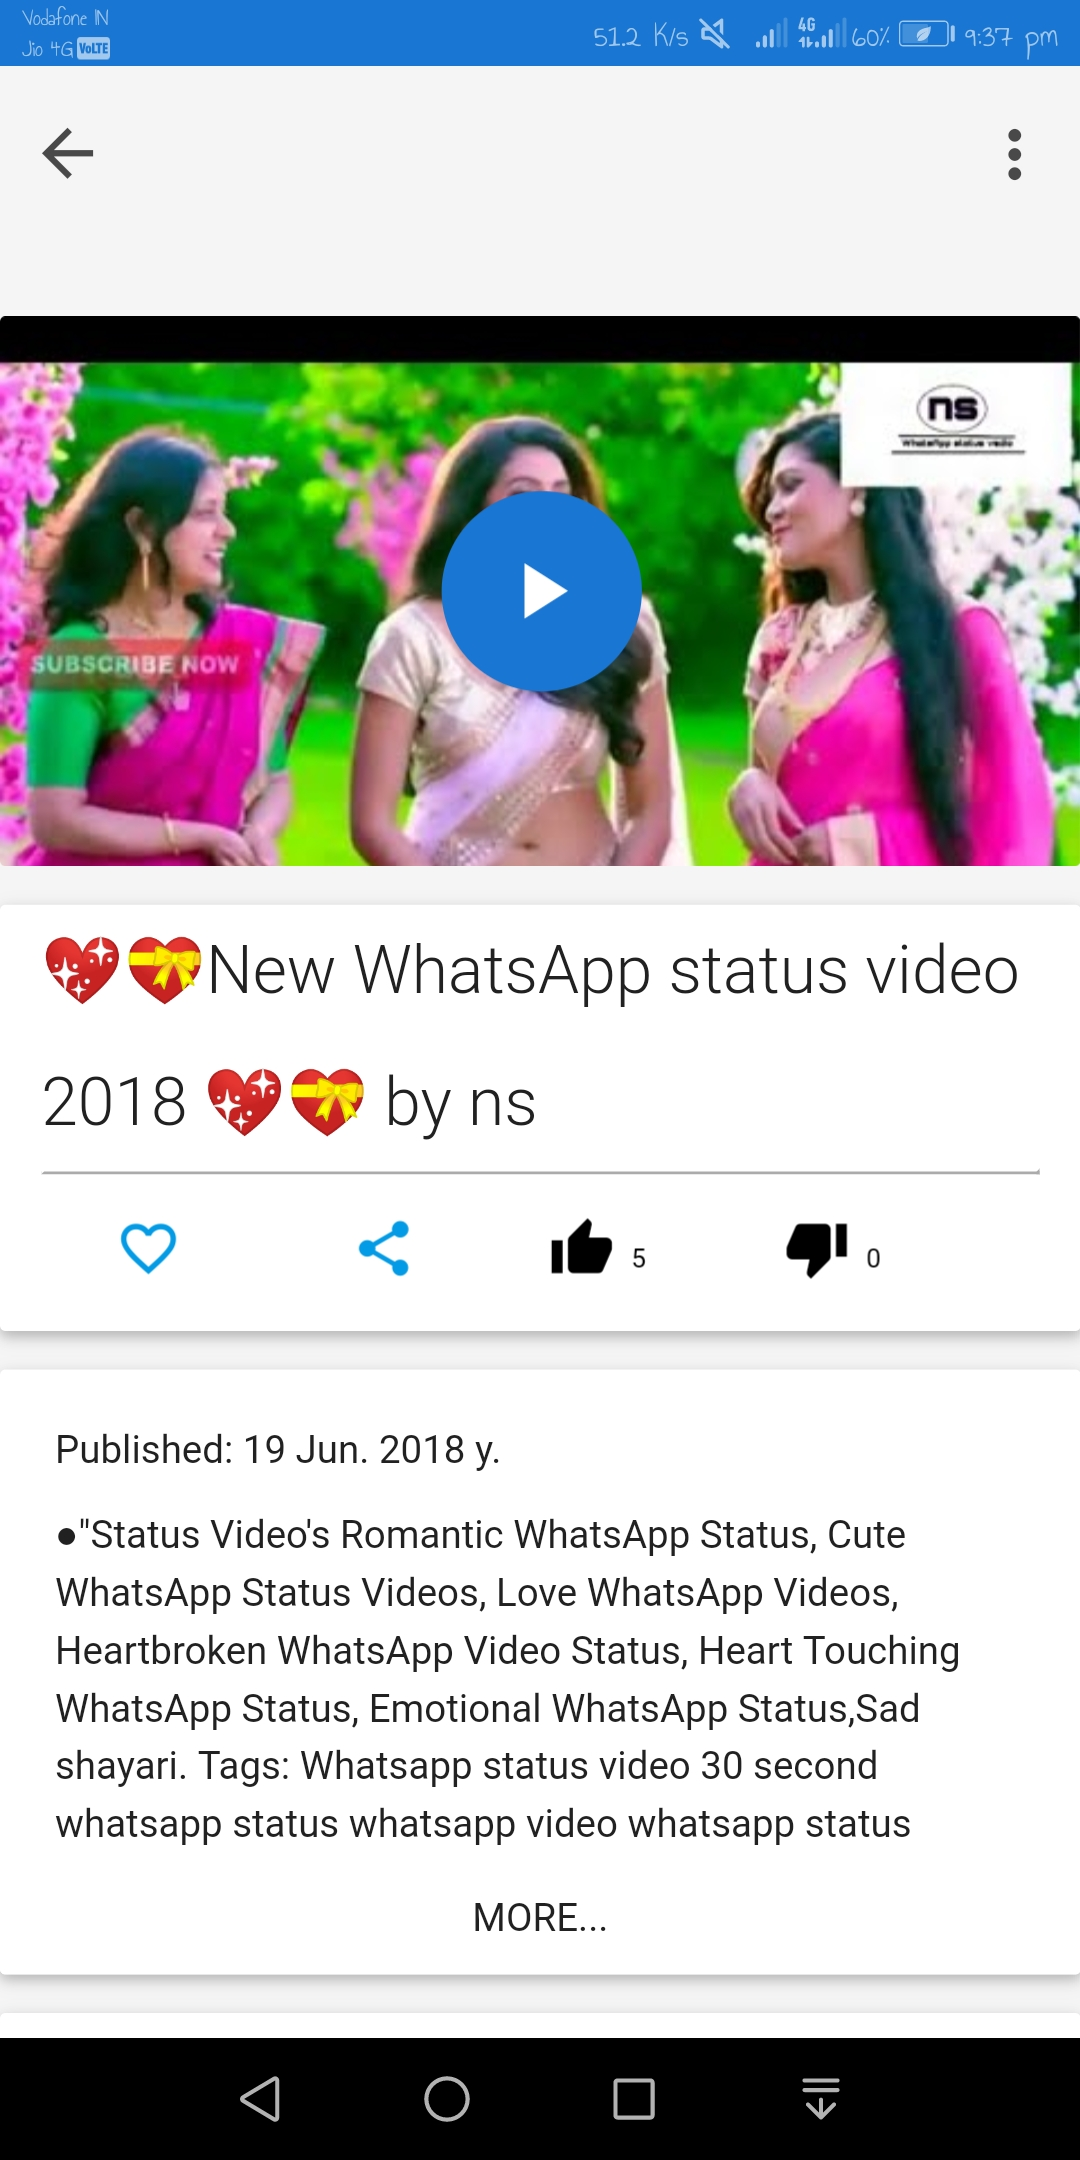 Ns whatsapp status videos 2018 Android App - Download Ns